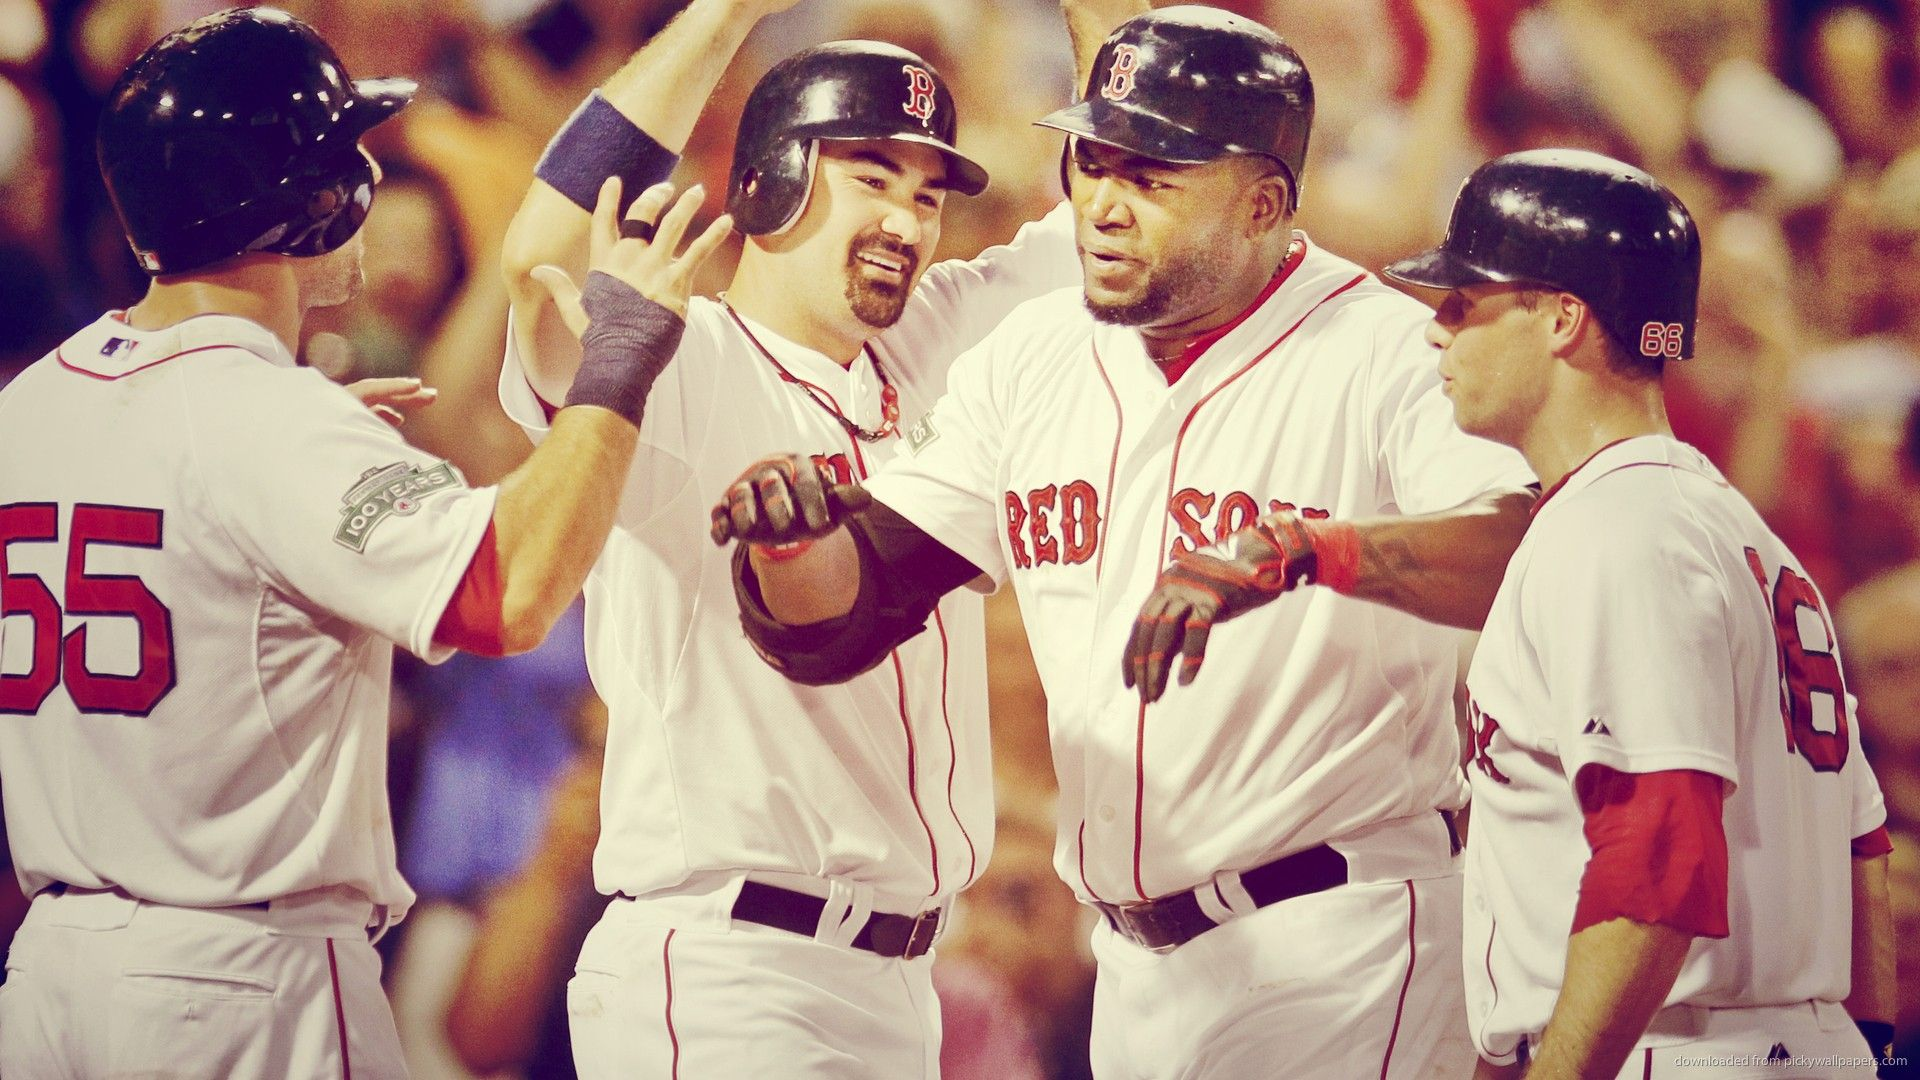 1920x1080 Red, So, David, Ortiz, Red And Blue, Game, Widescreen ...